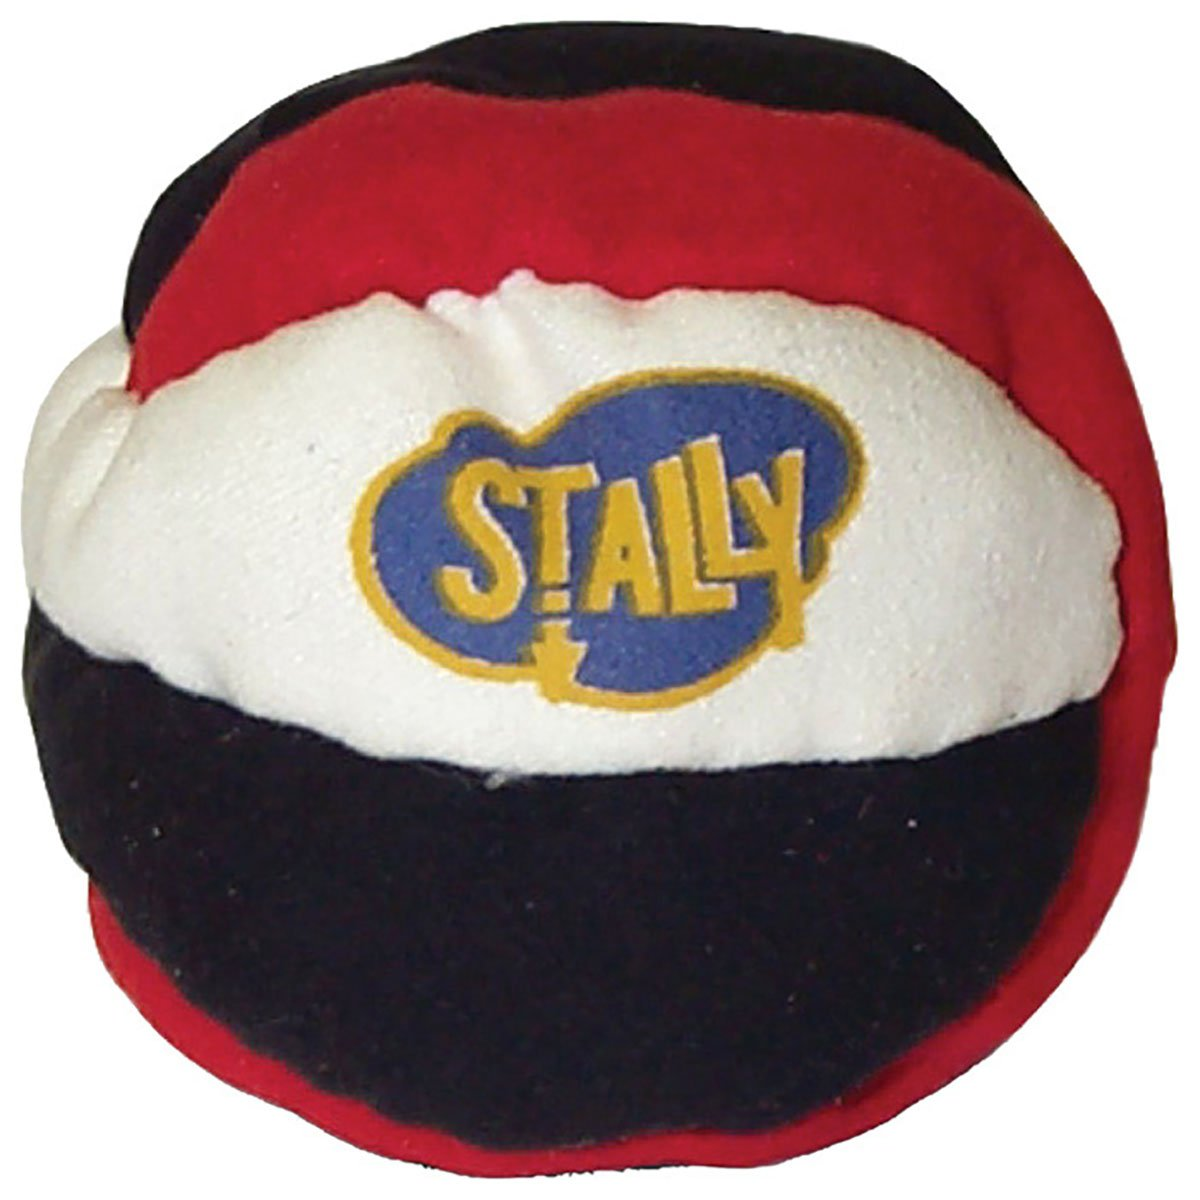 Mundial Footbag stally, Multicolor WORLD FOOTBAG